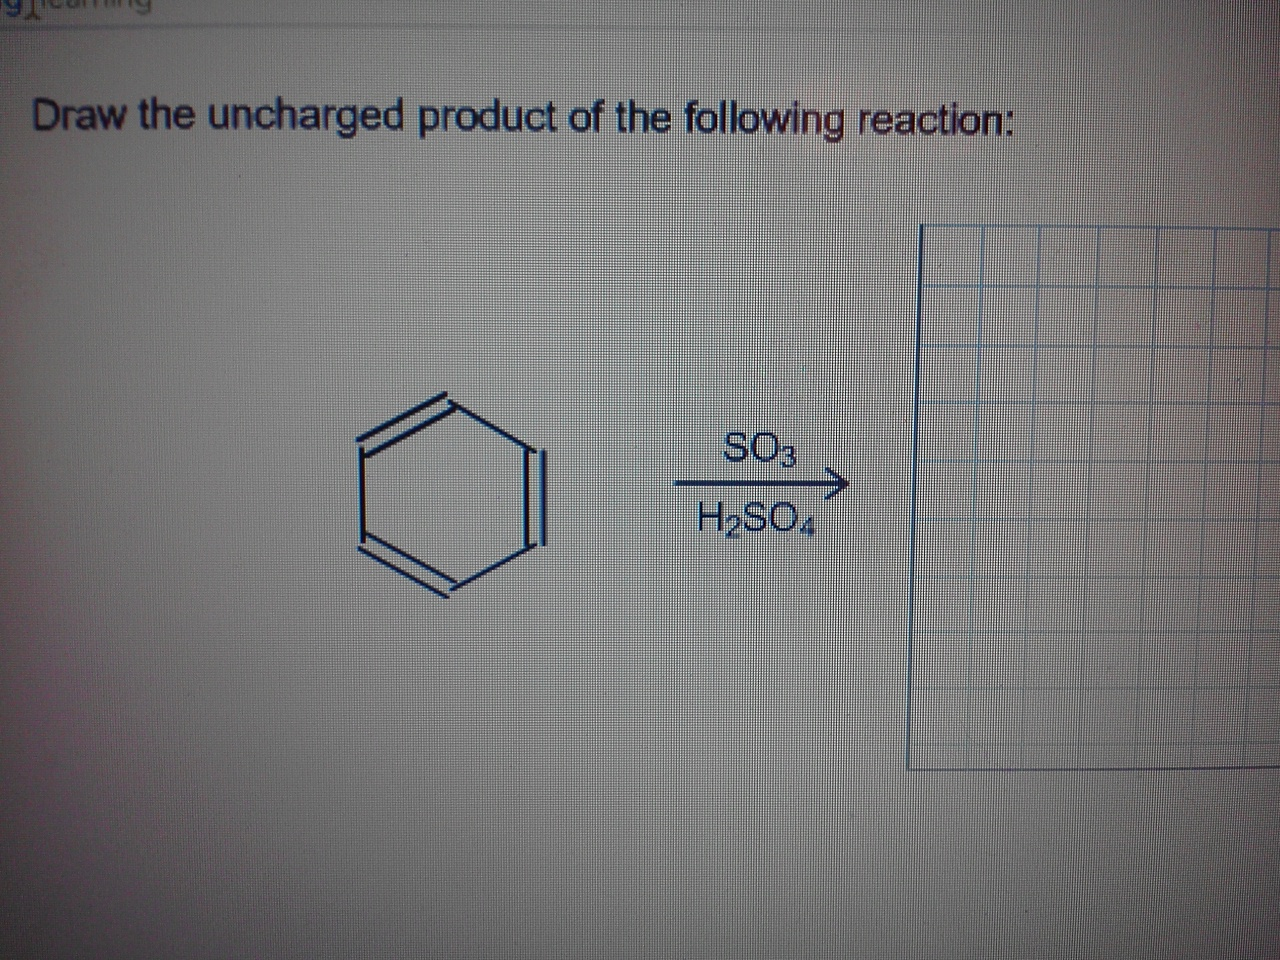 Draw The Uncharged Product Of The Following Reaction | Chegg.com